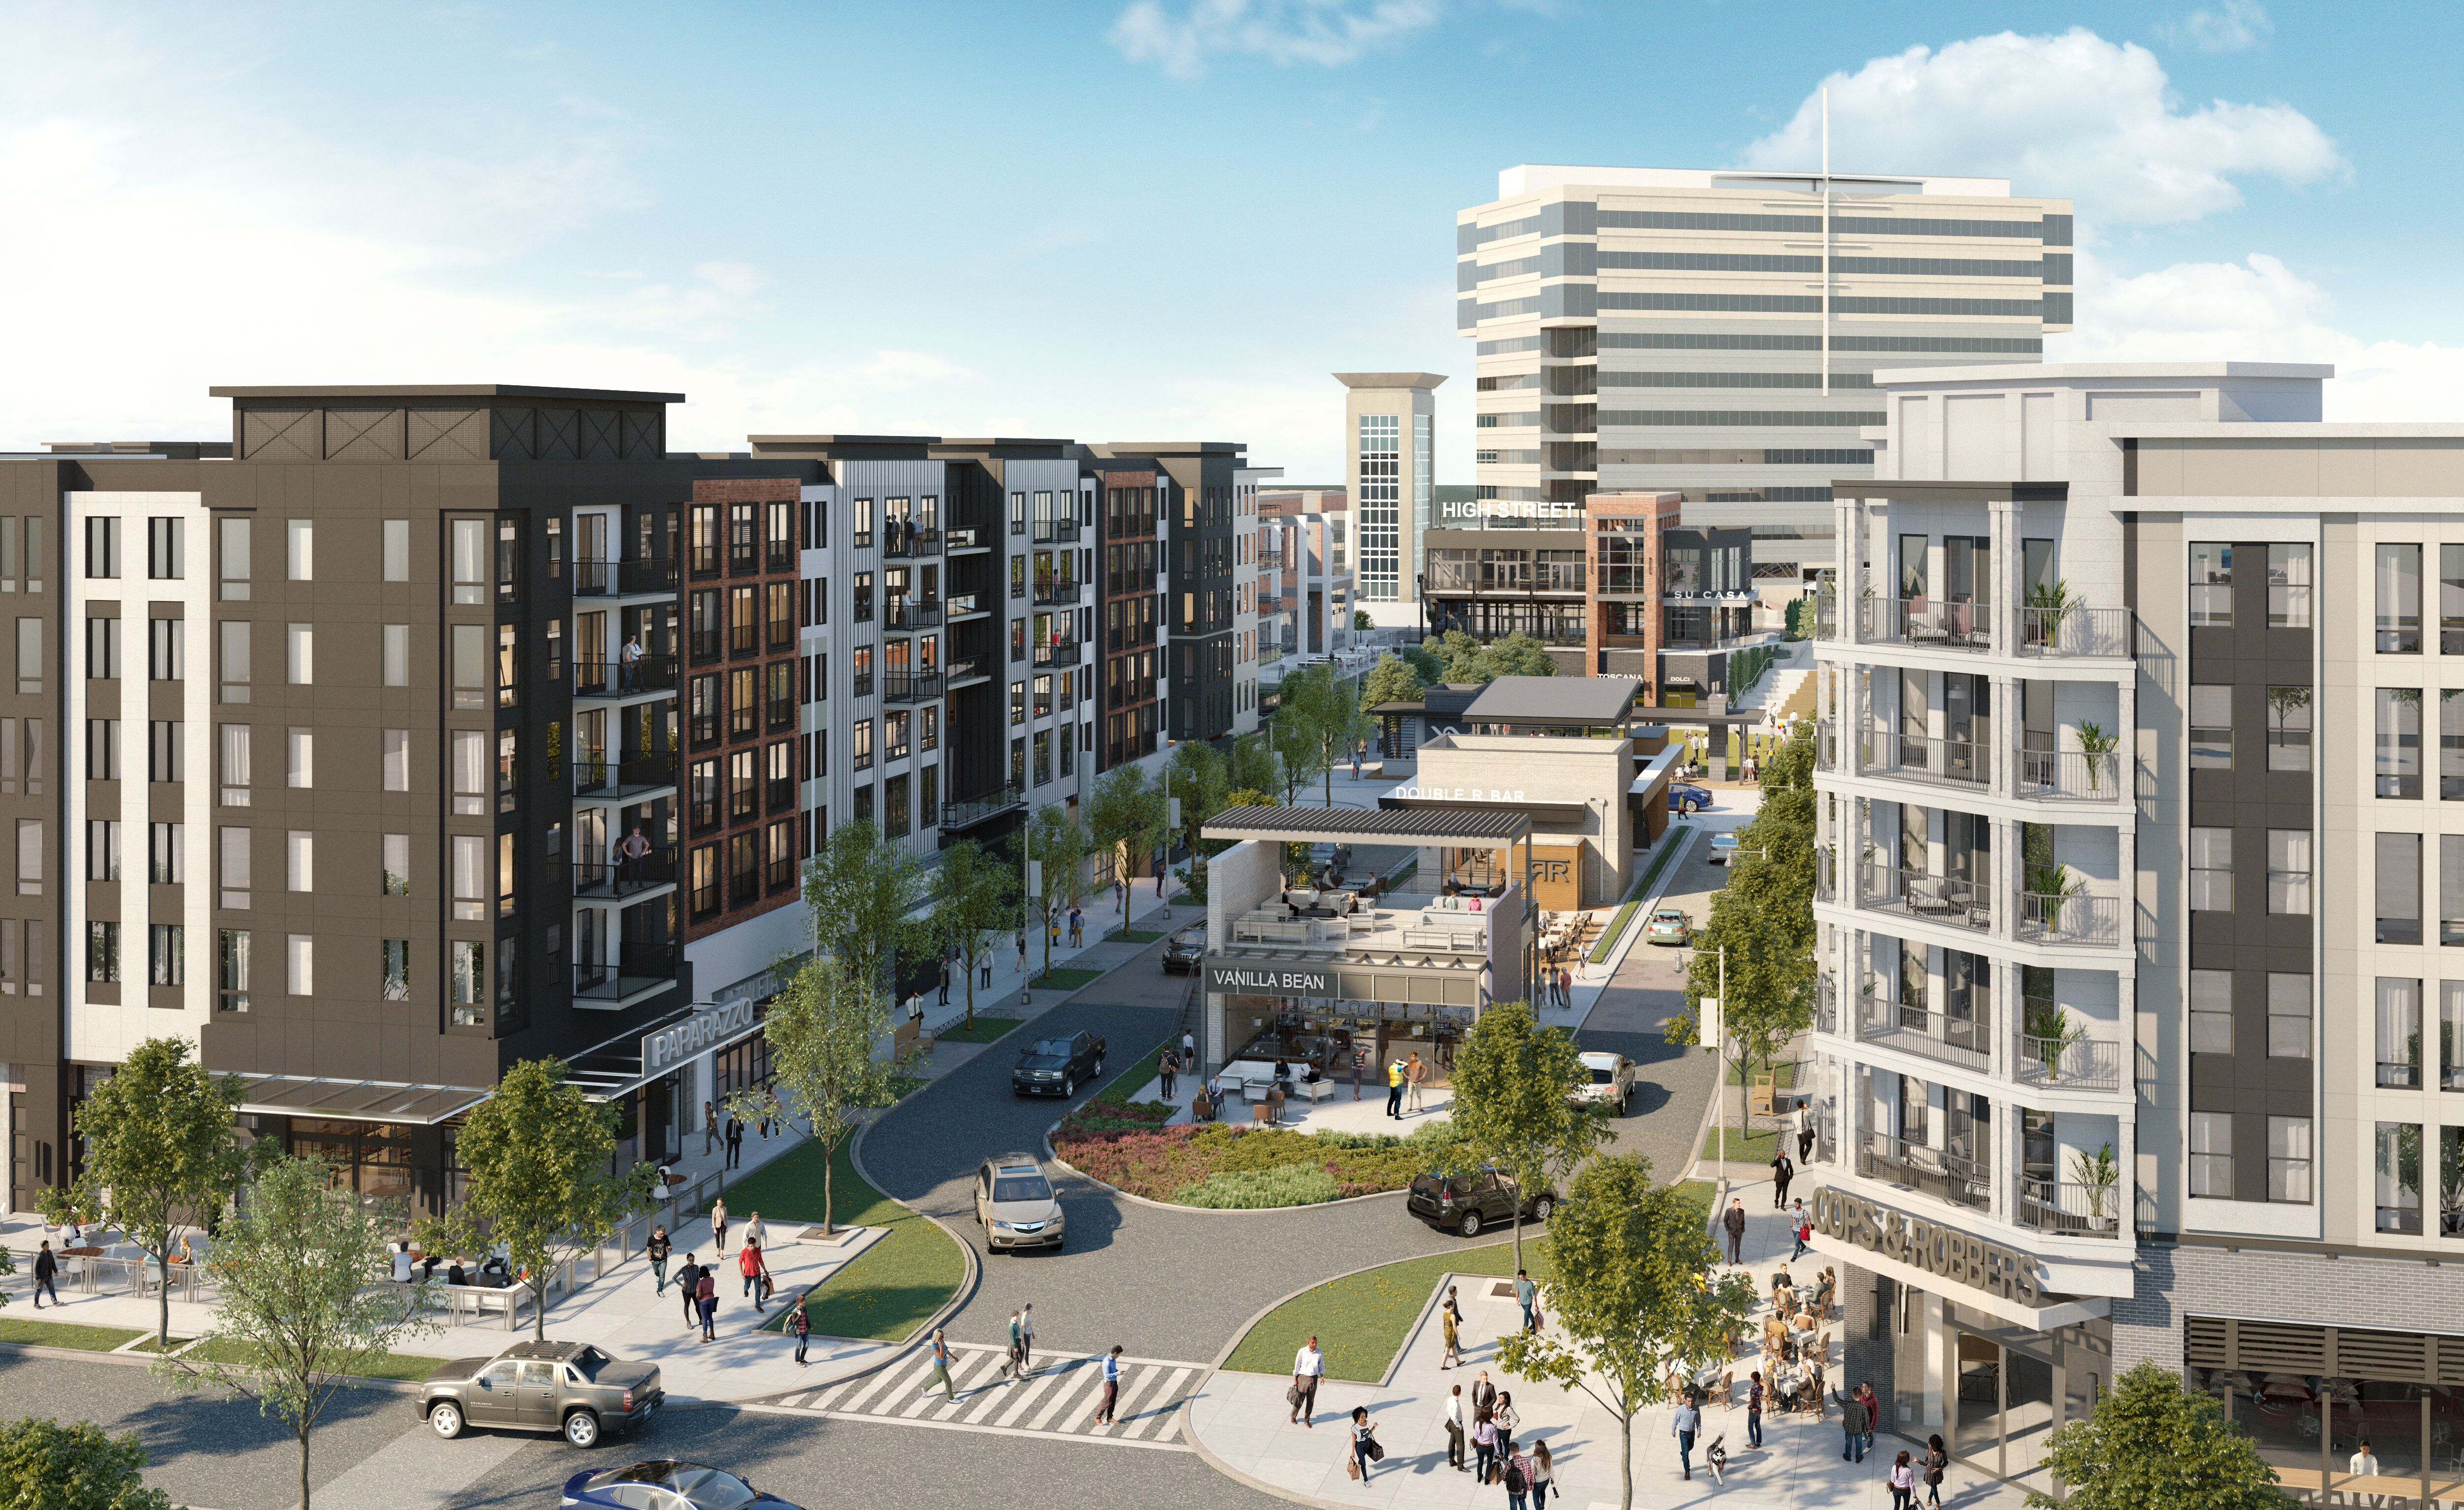 A rendering of a dense mixed-use community.